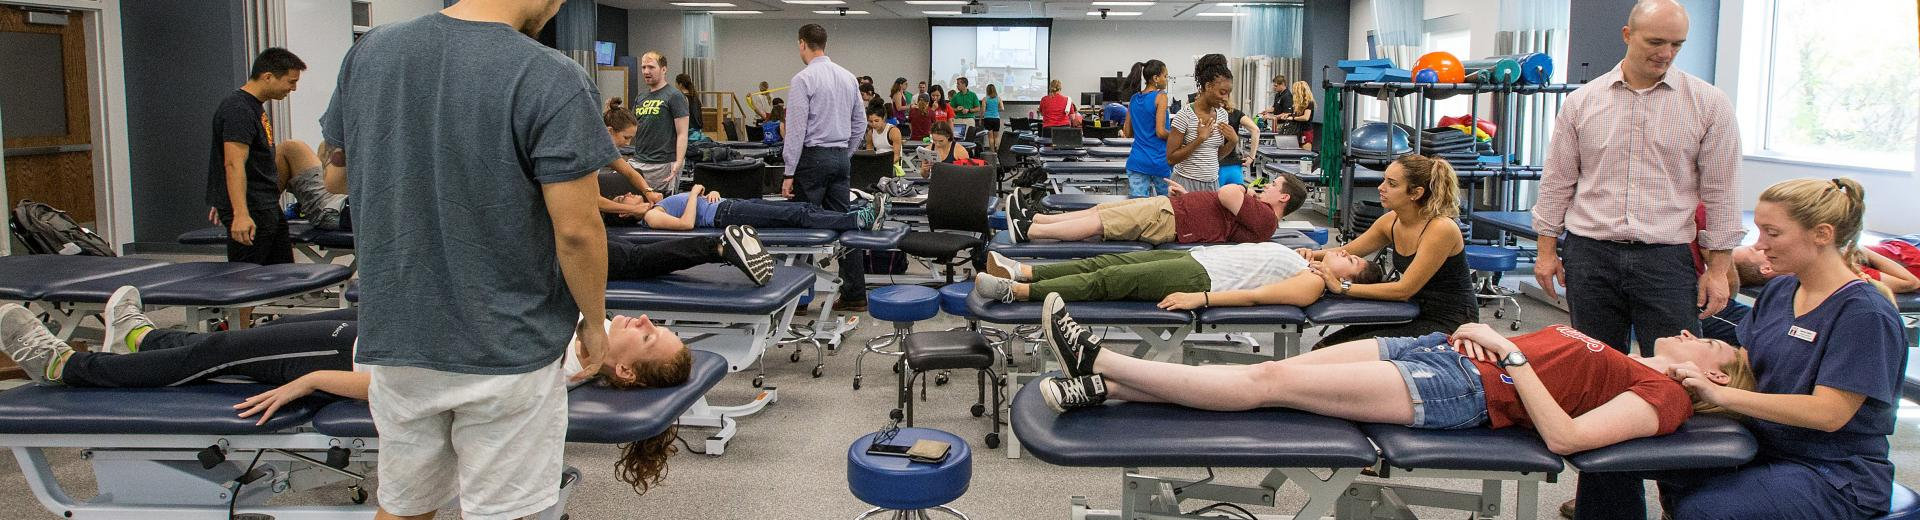 Physical therapy students practicing on patients